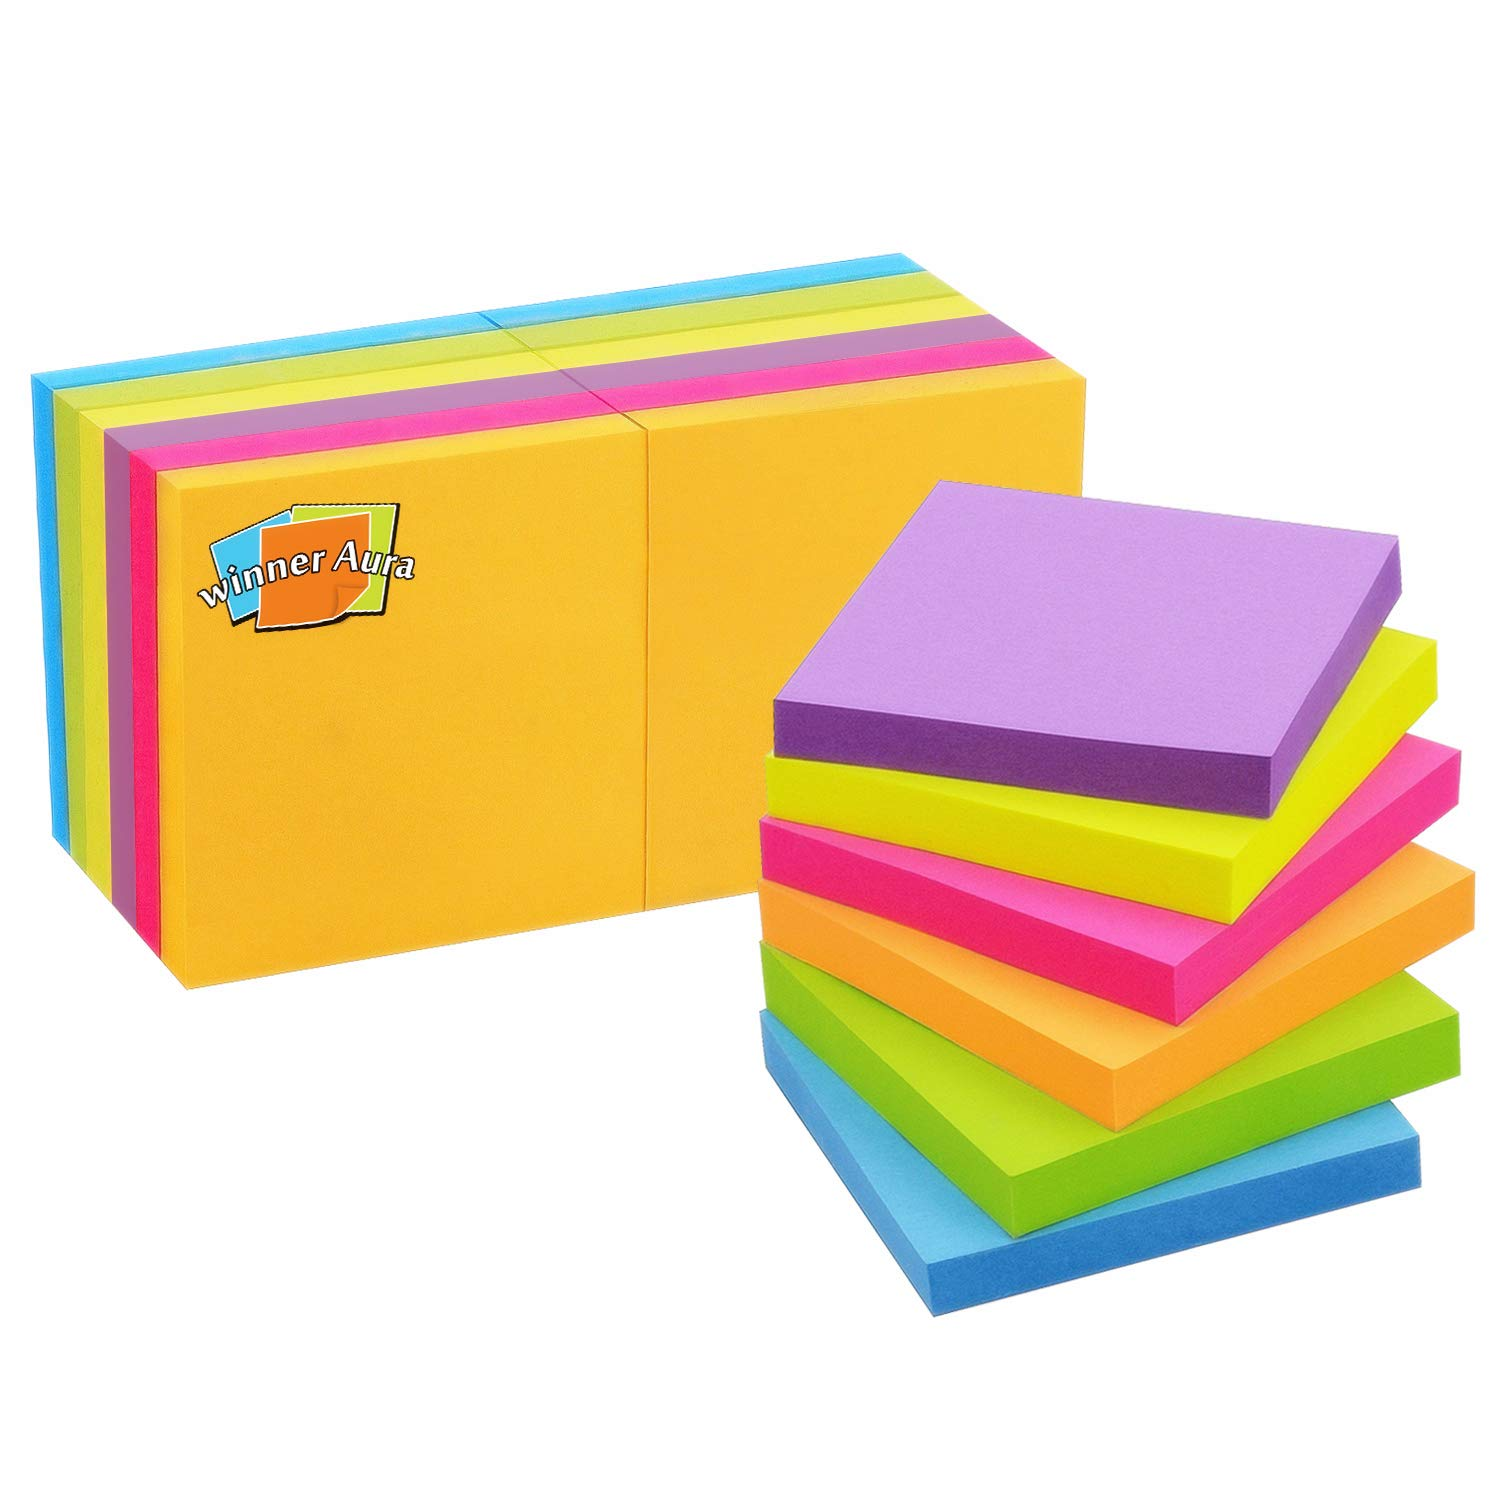 Pop Up Sticky Notes 3x3 inch Bright Colors Self-Stick Pads 12 Pads/Pack 100 Sheets/Pad Total 1200 Sheets by Winner Aura